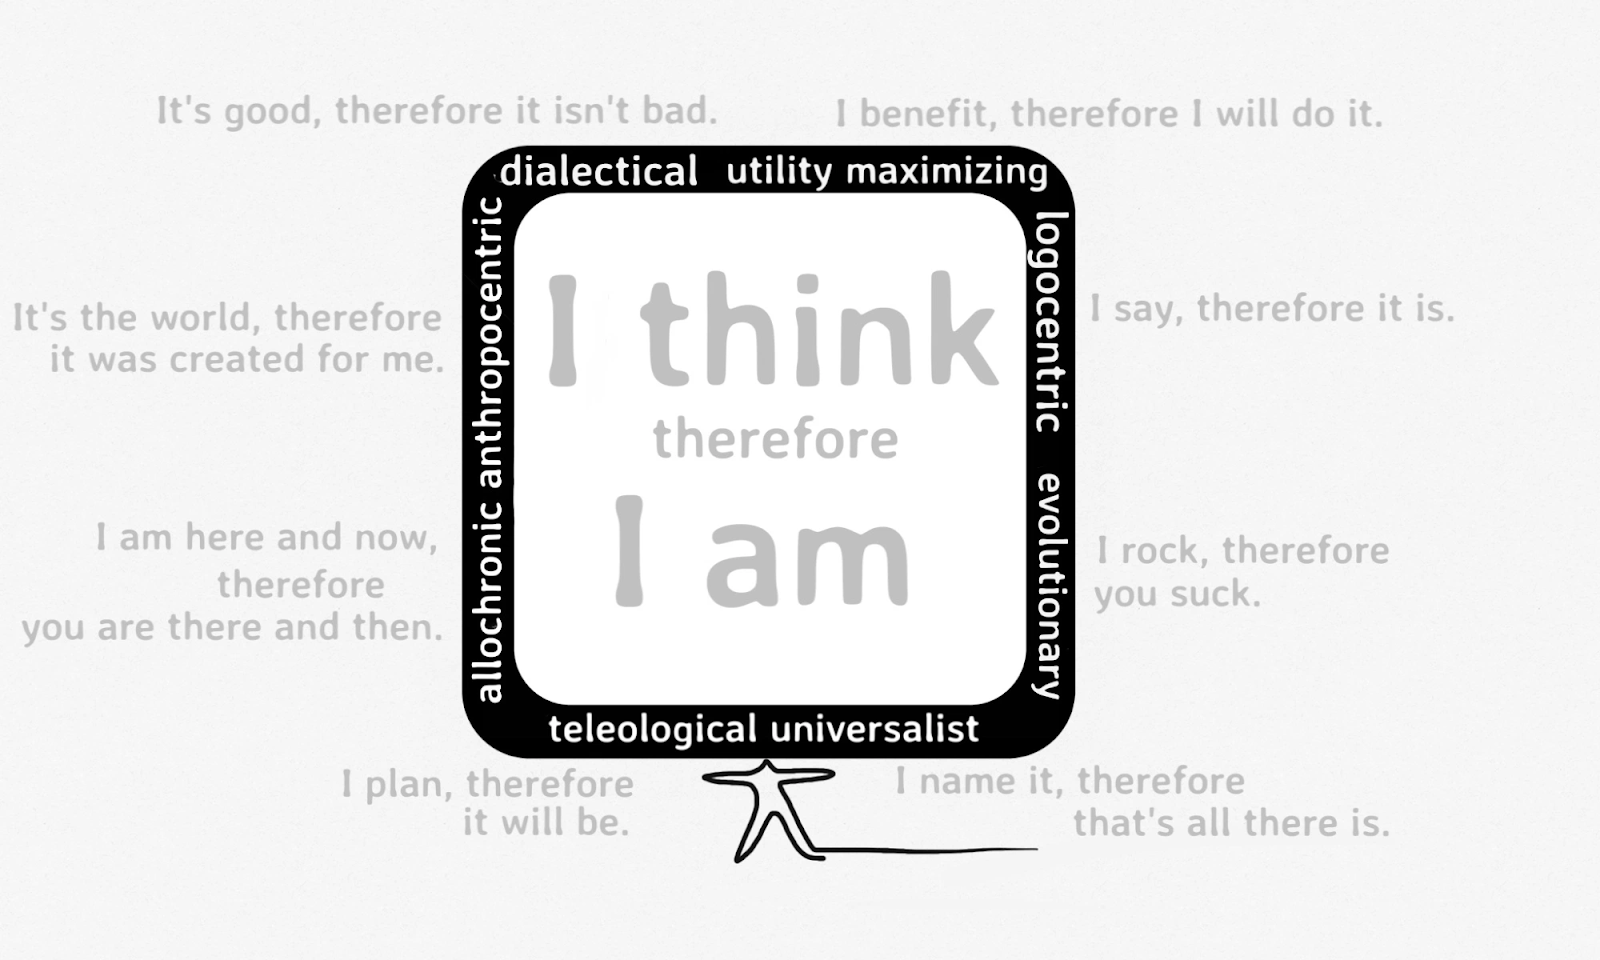 A square box in thick black outline is in the centre of the image, with the words